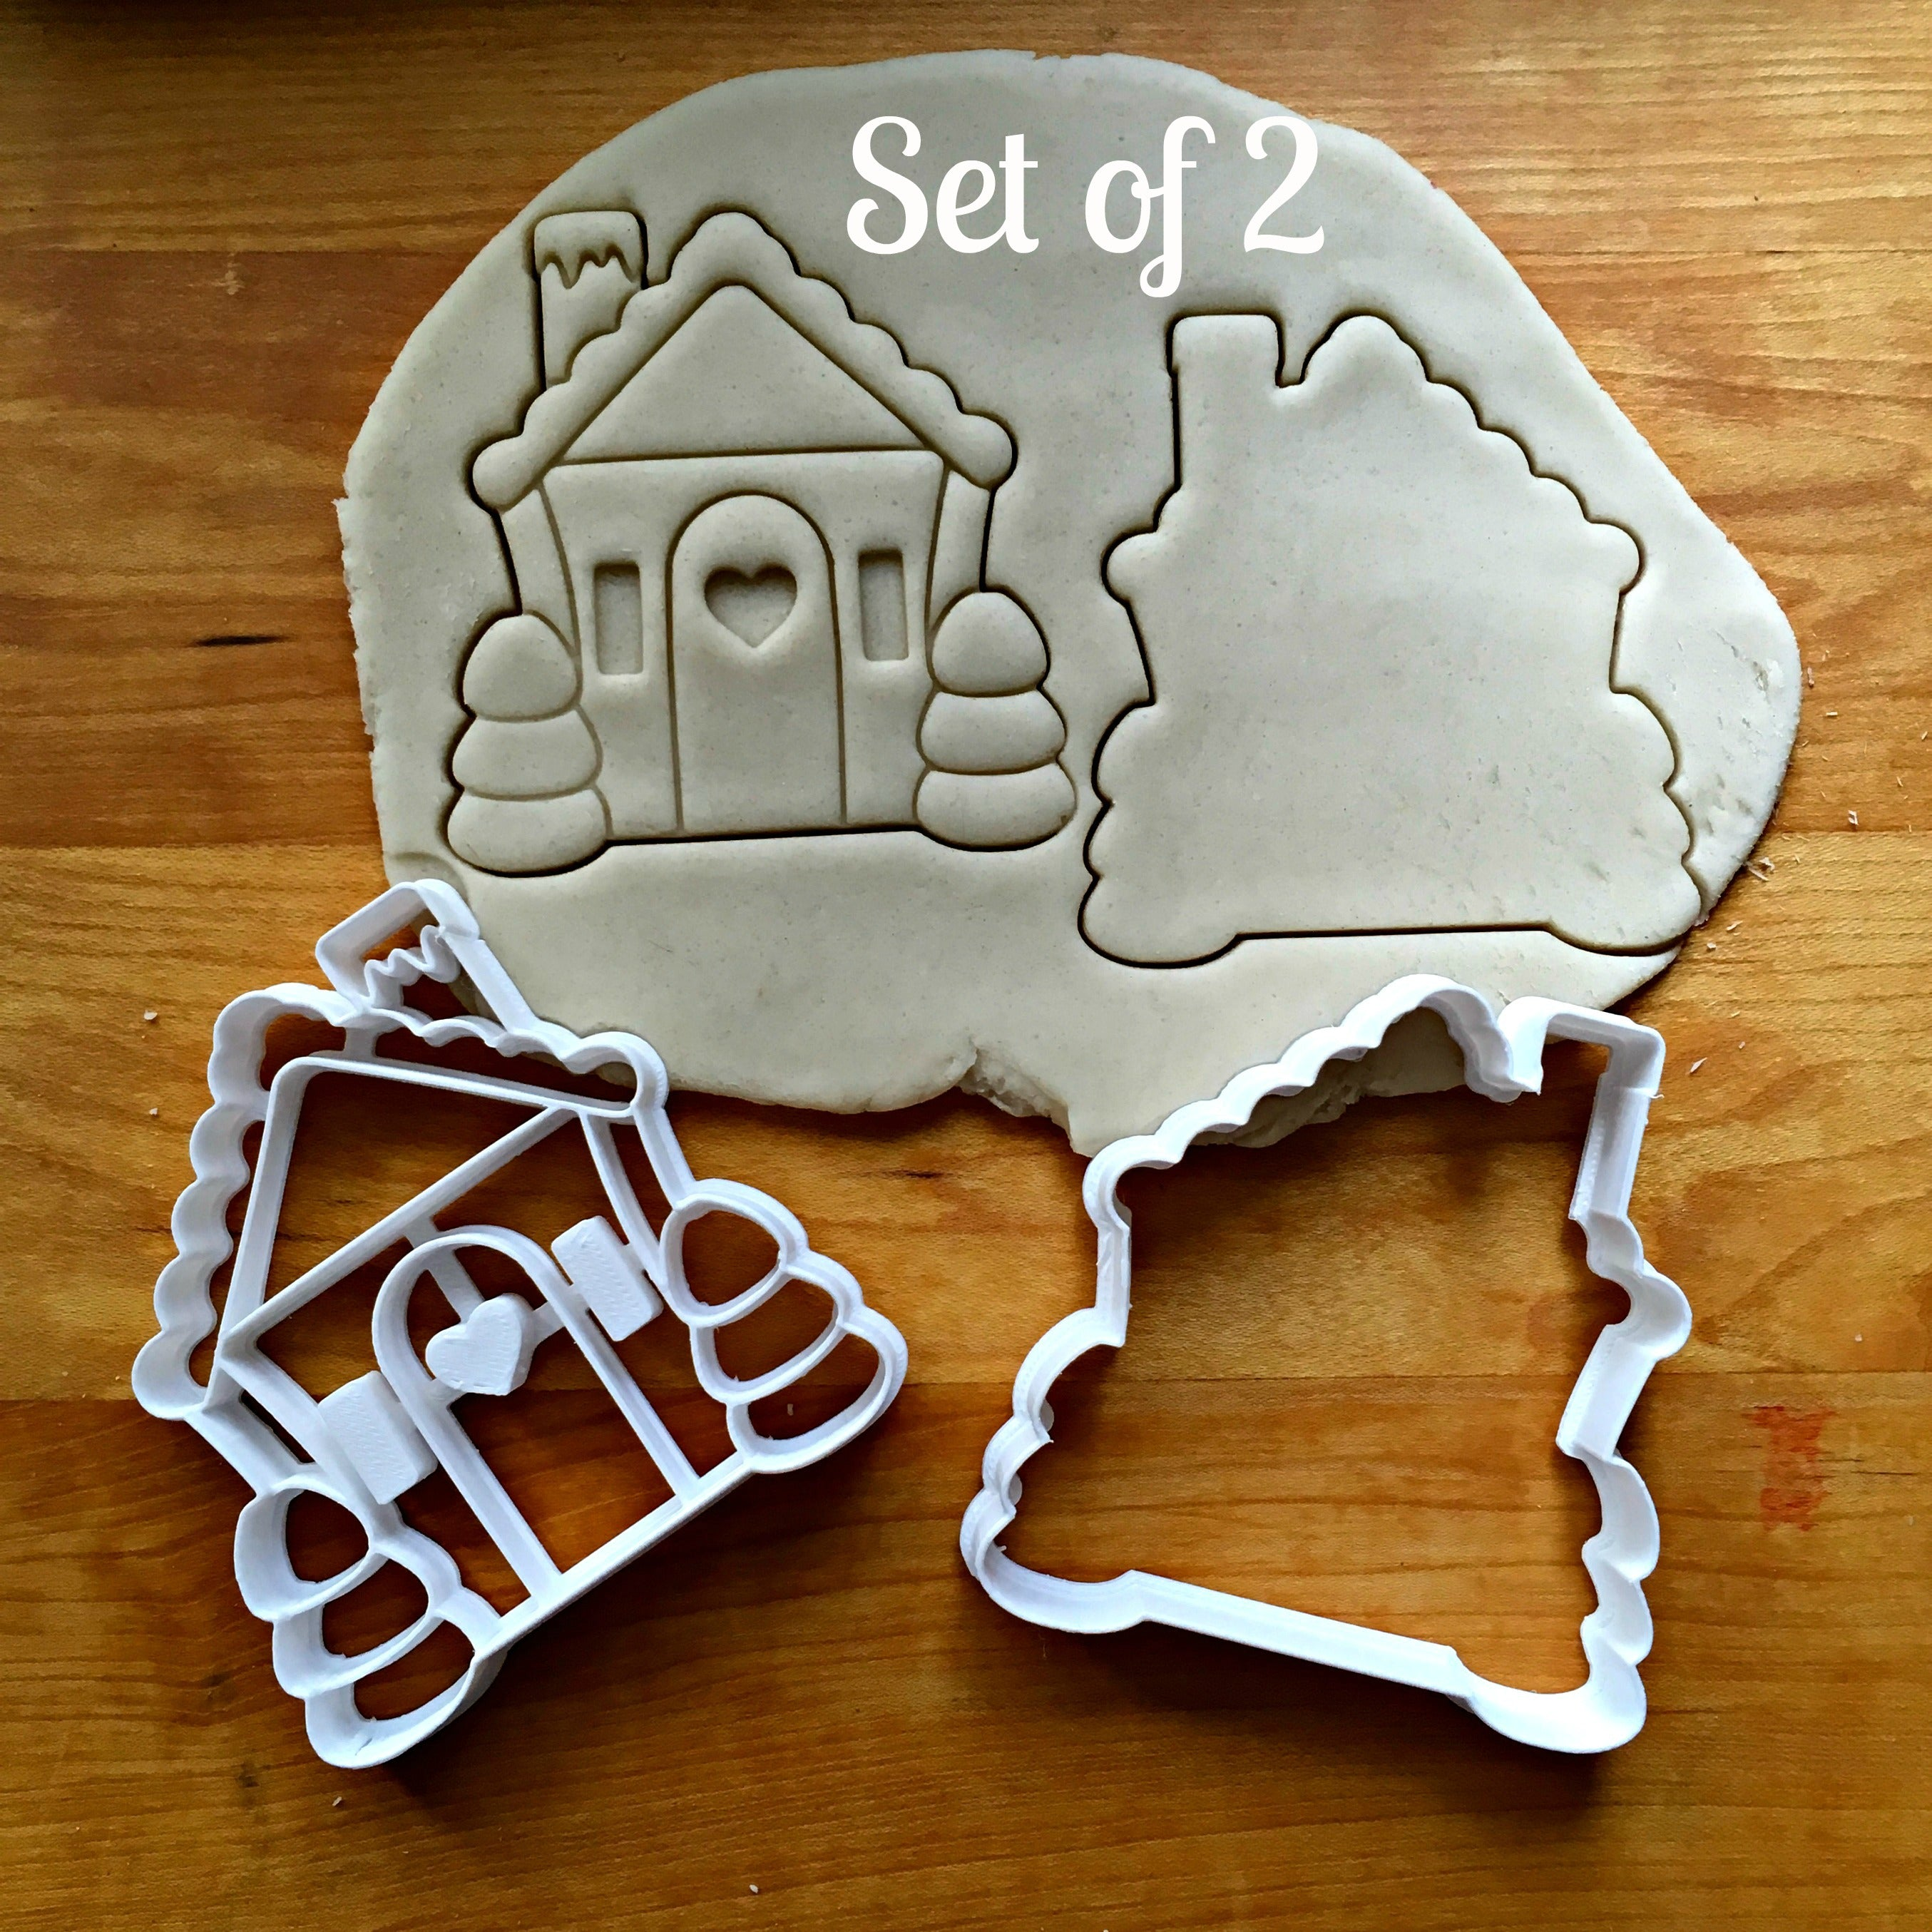 Set of 2 Gingerbread House Cookie Cutters